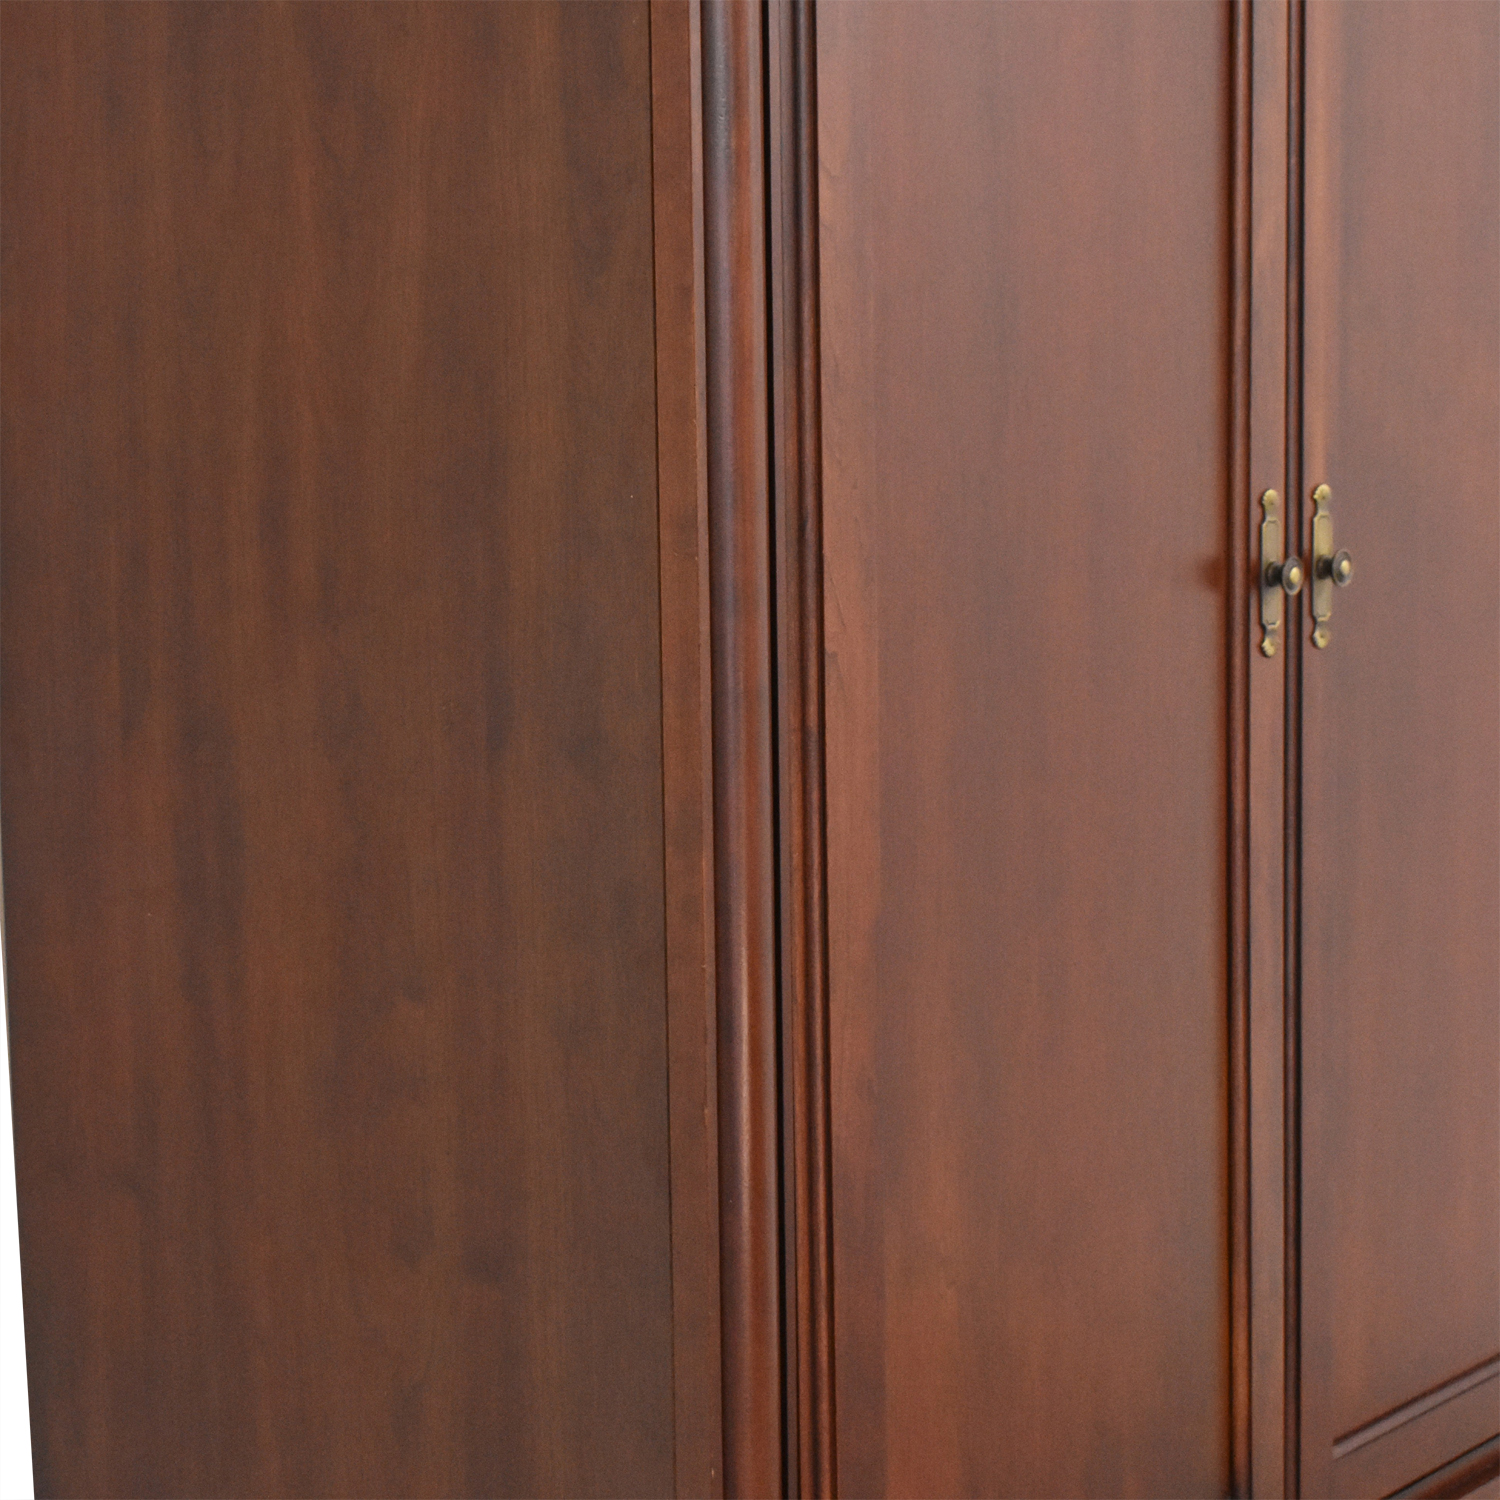 Ethan Allen Ethan Allen Medallion Media Armoire coupon